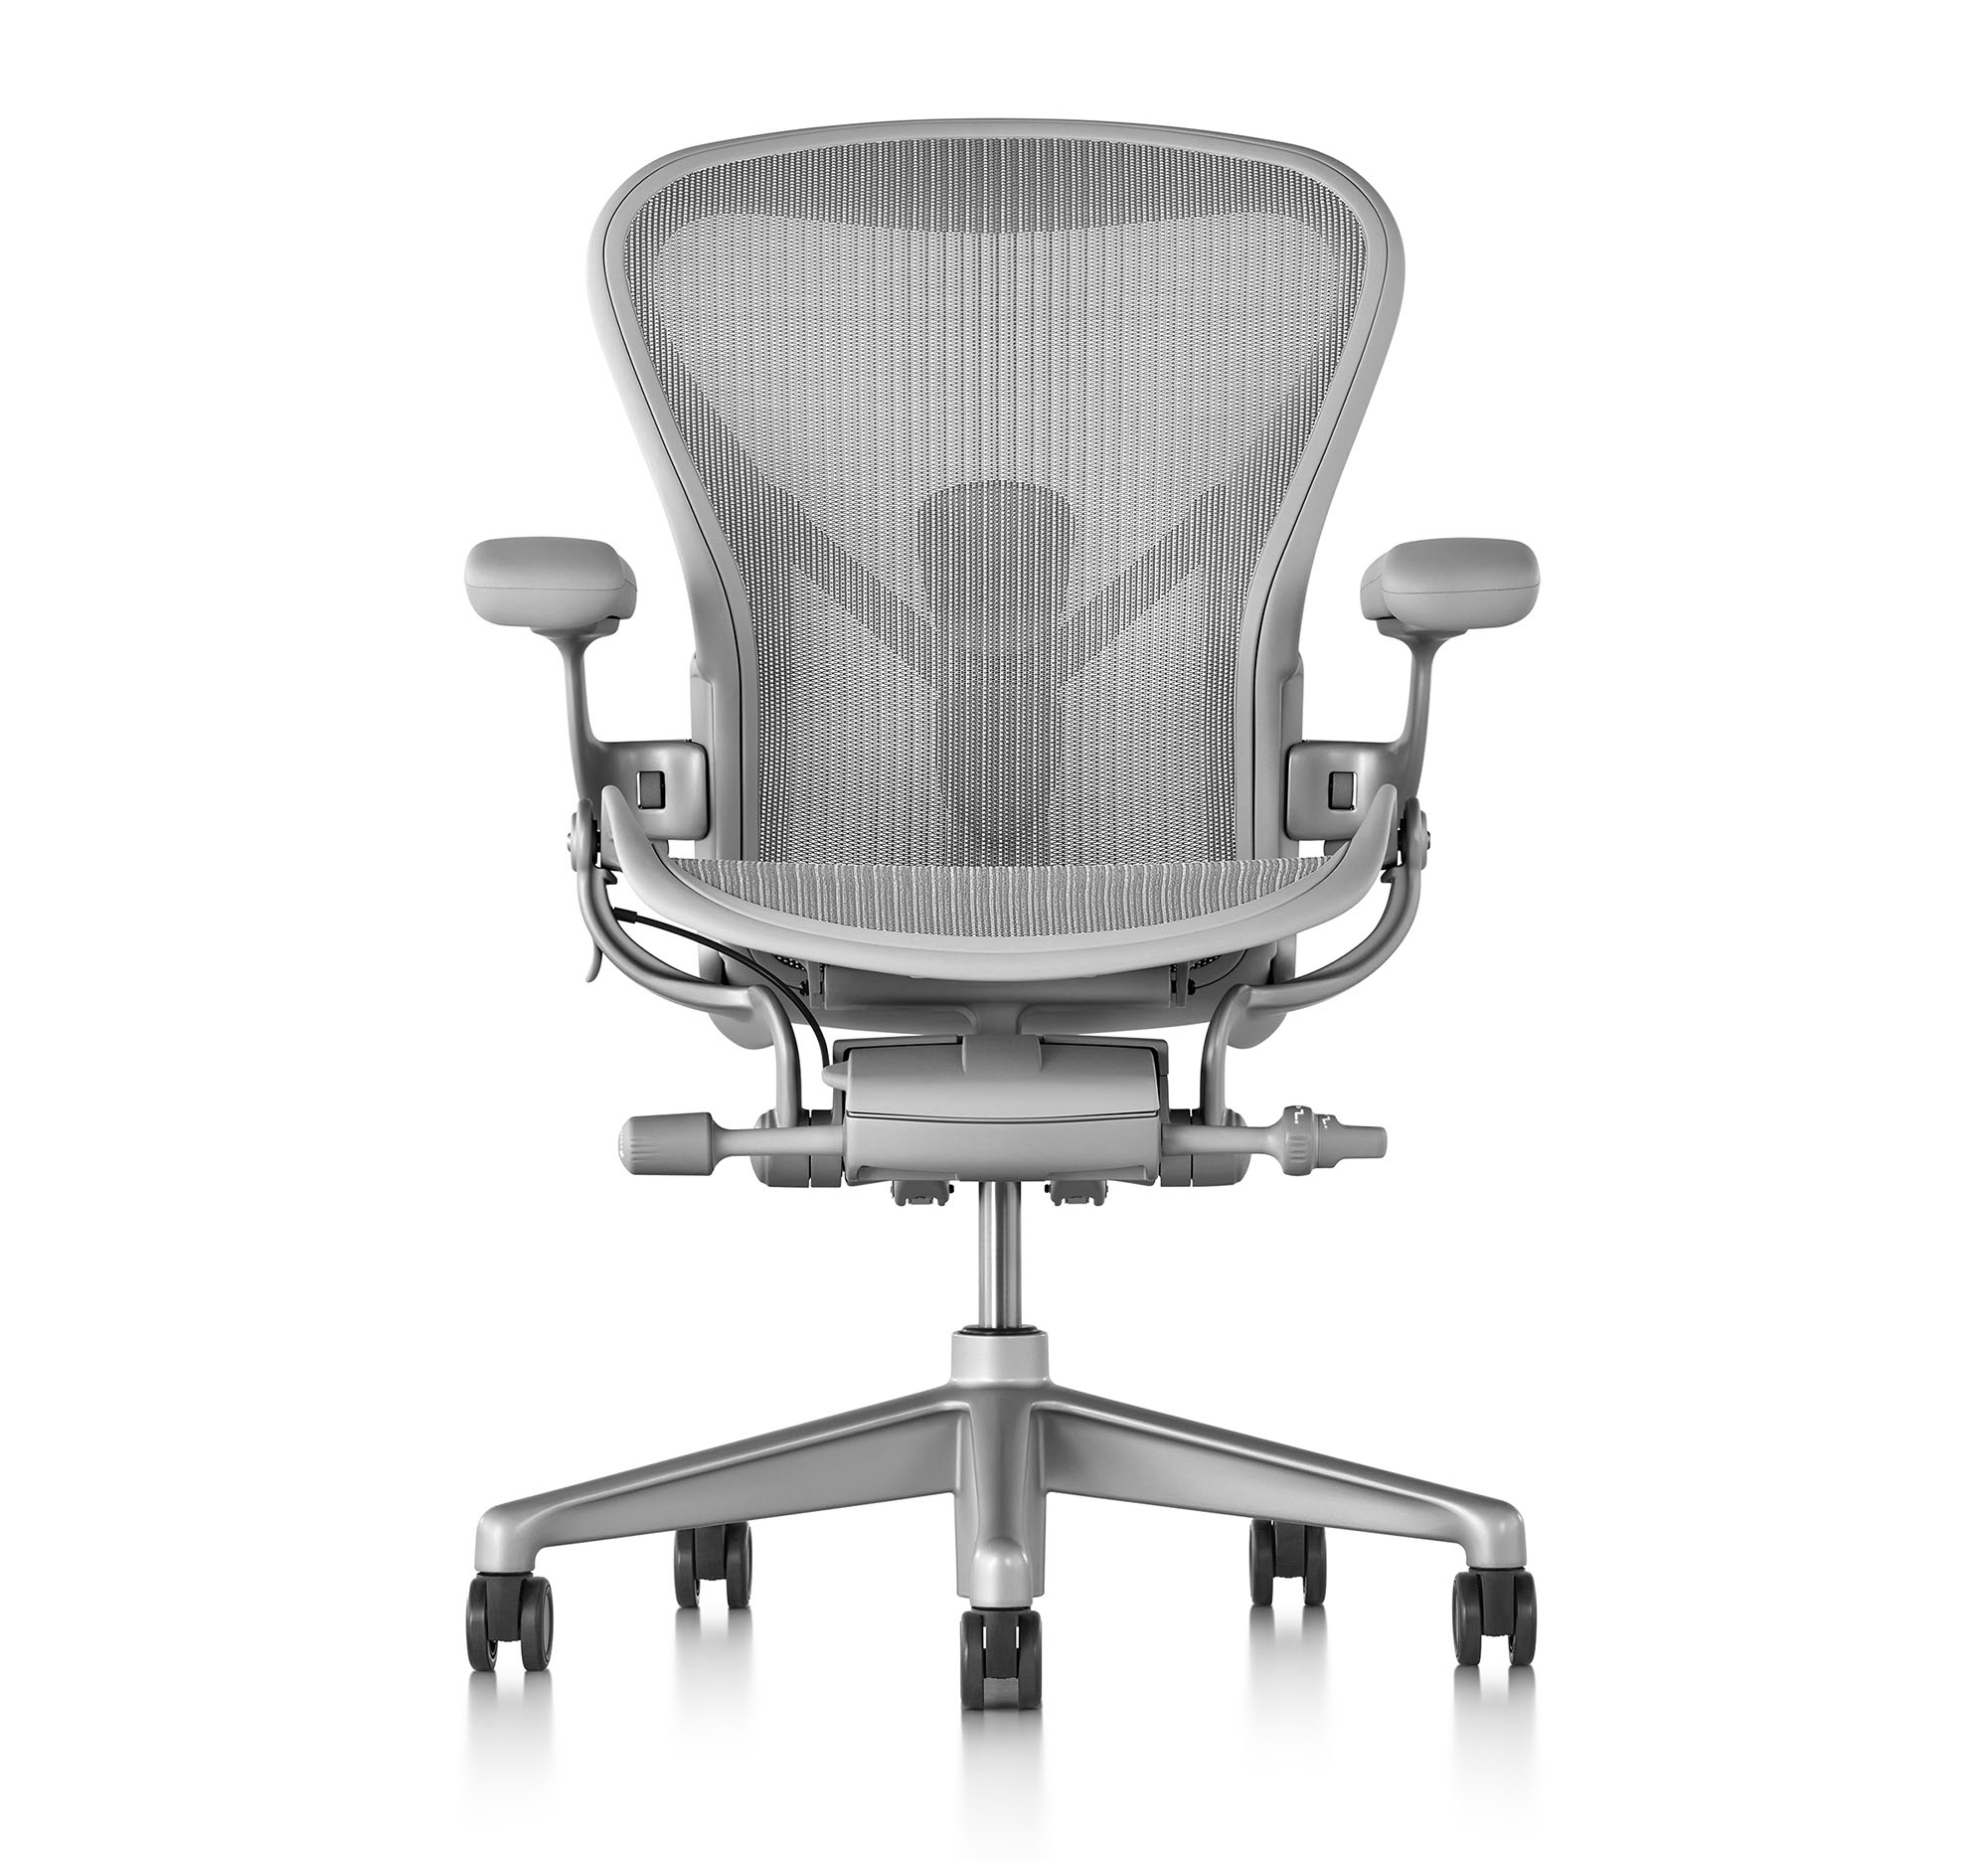 Herman Miller Aeron in Mineral color